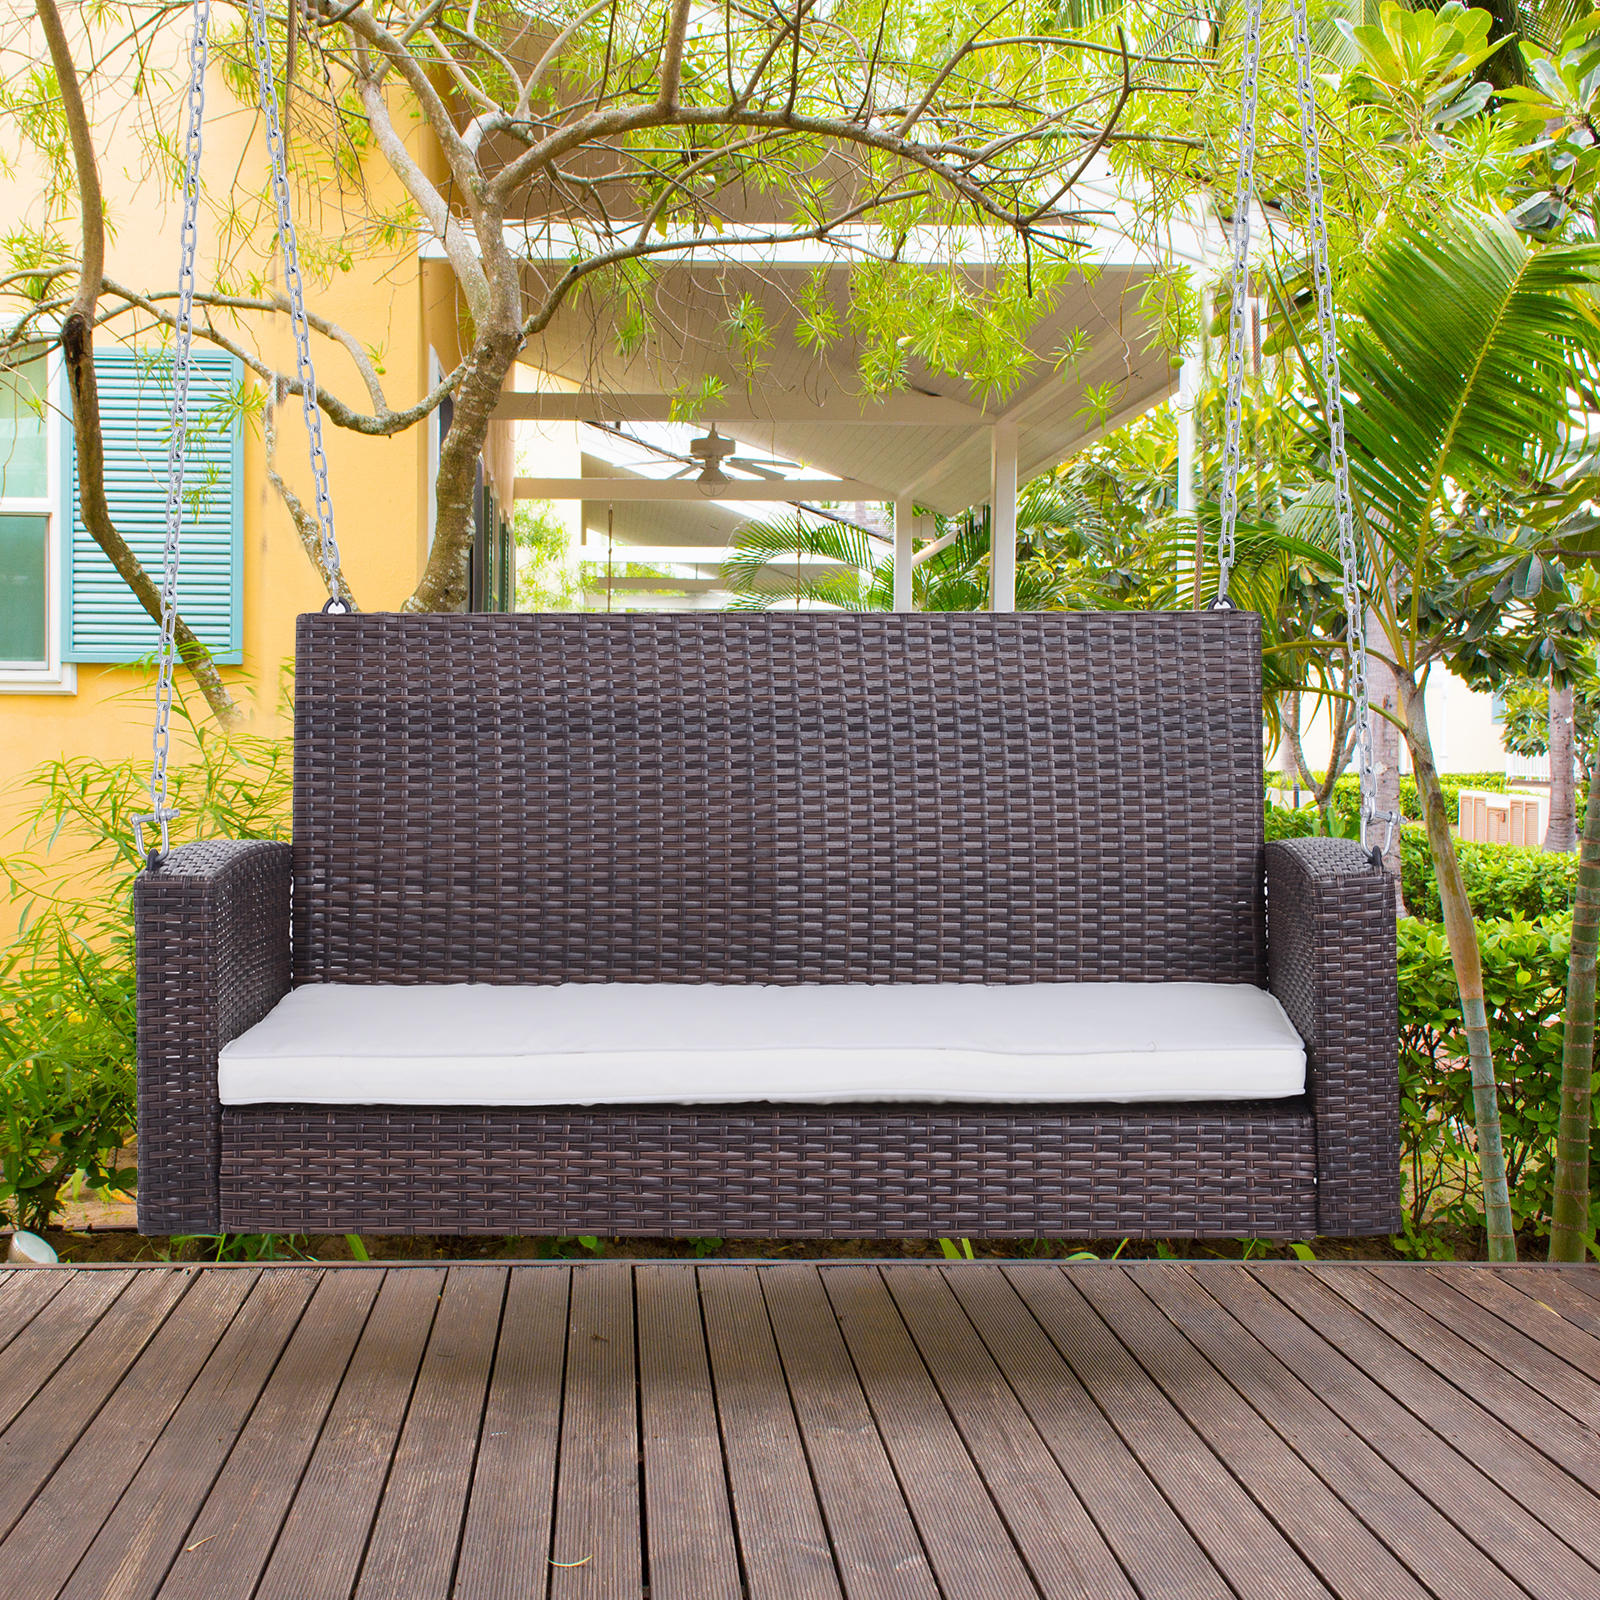 Miraculous Details About 2 Person Outdoor Wicker Porch Swing Chair Garden Hanging Bench Seat Alphanode Cool Chair Designs And Ideas Alphanodeonline